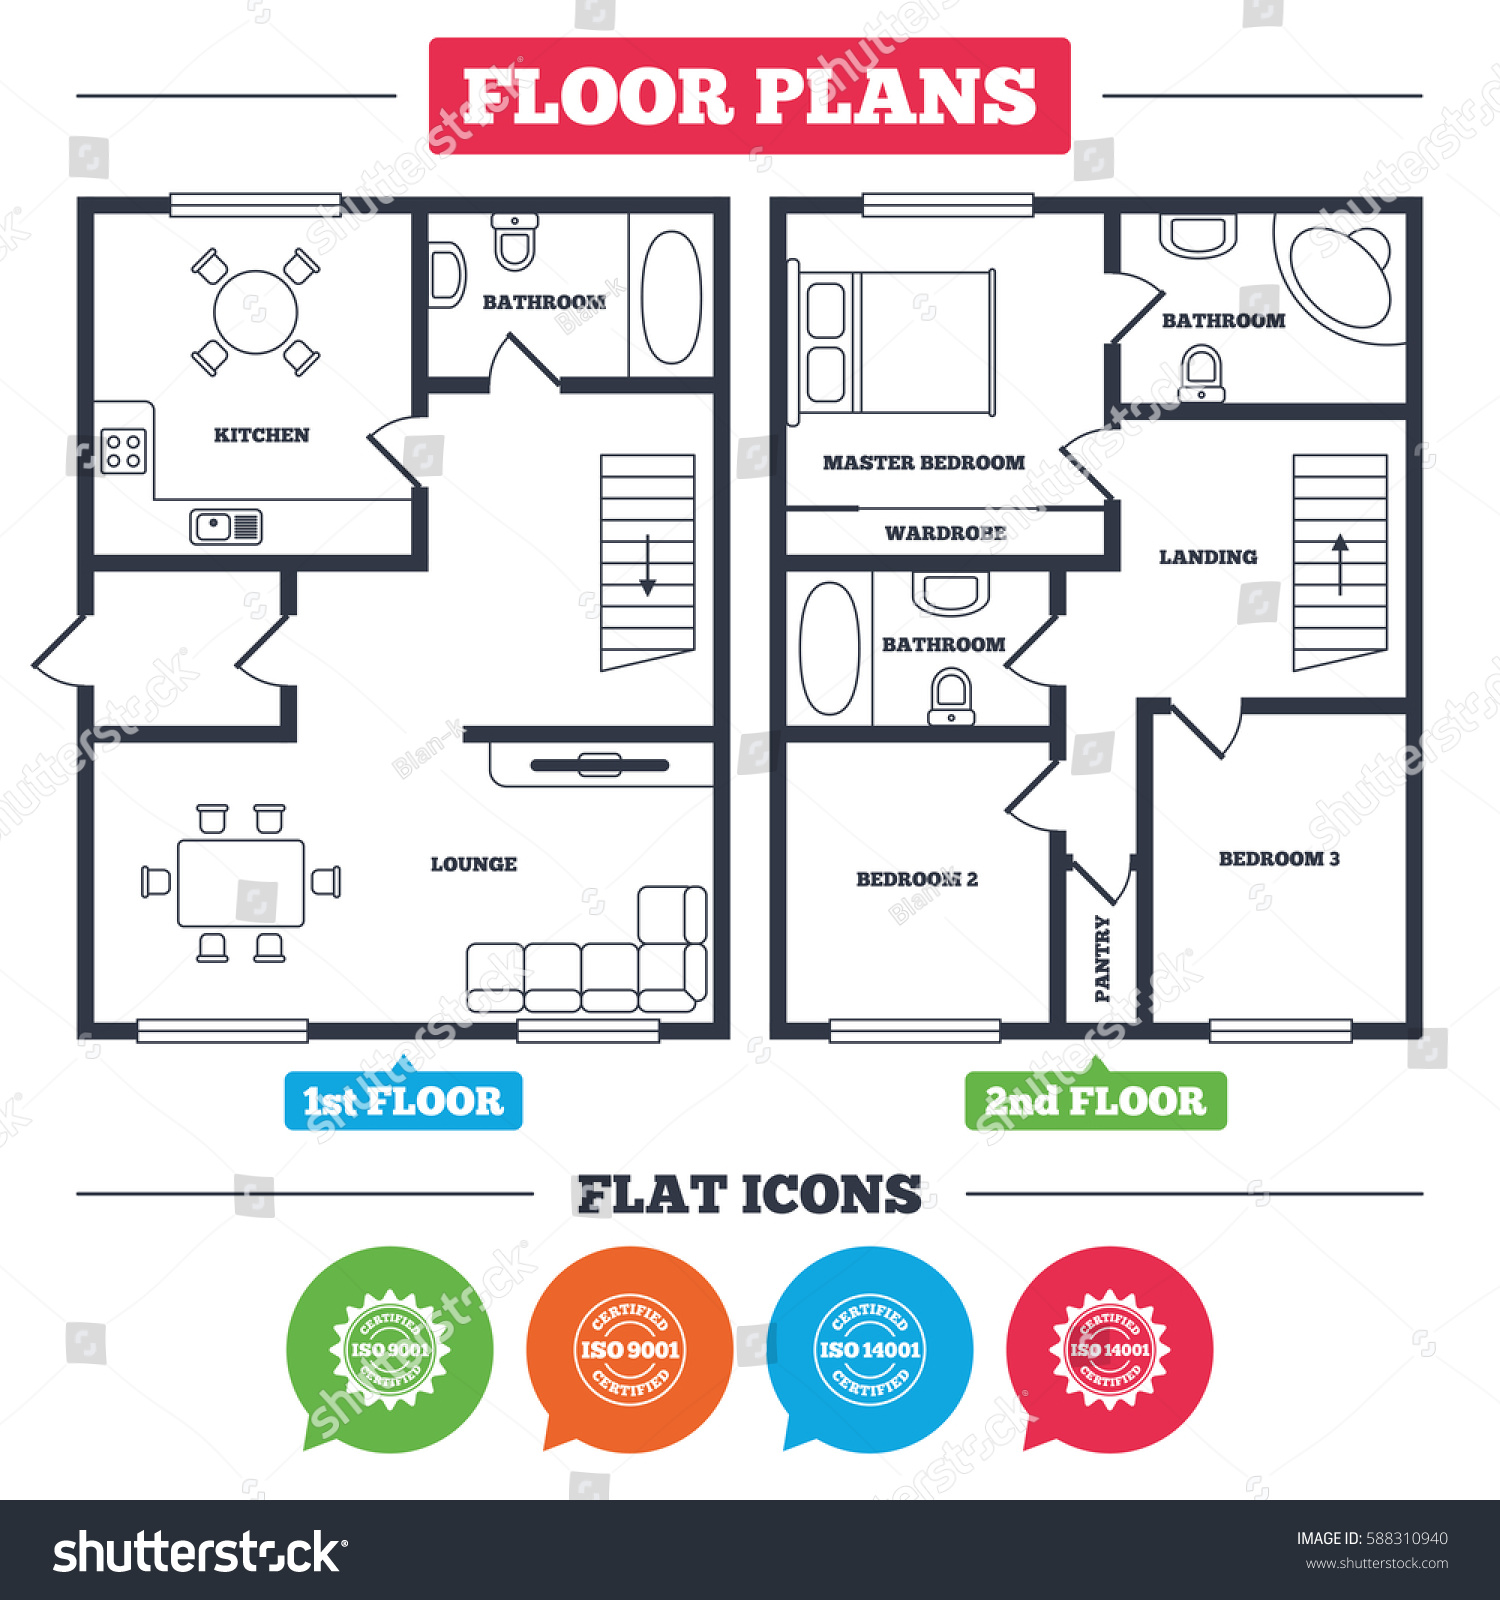 Architecture plan furniture house floor plan stock vector architecture plan with furniture house floor plan iso 9001 and 14001 certified icons buycottarizona